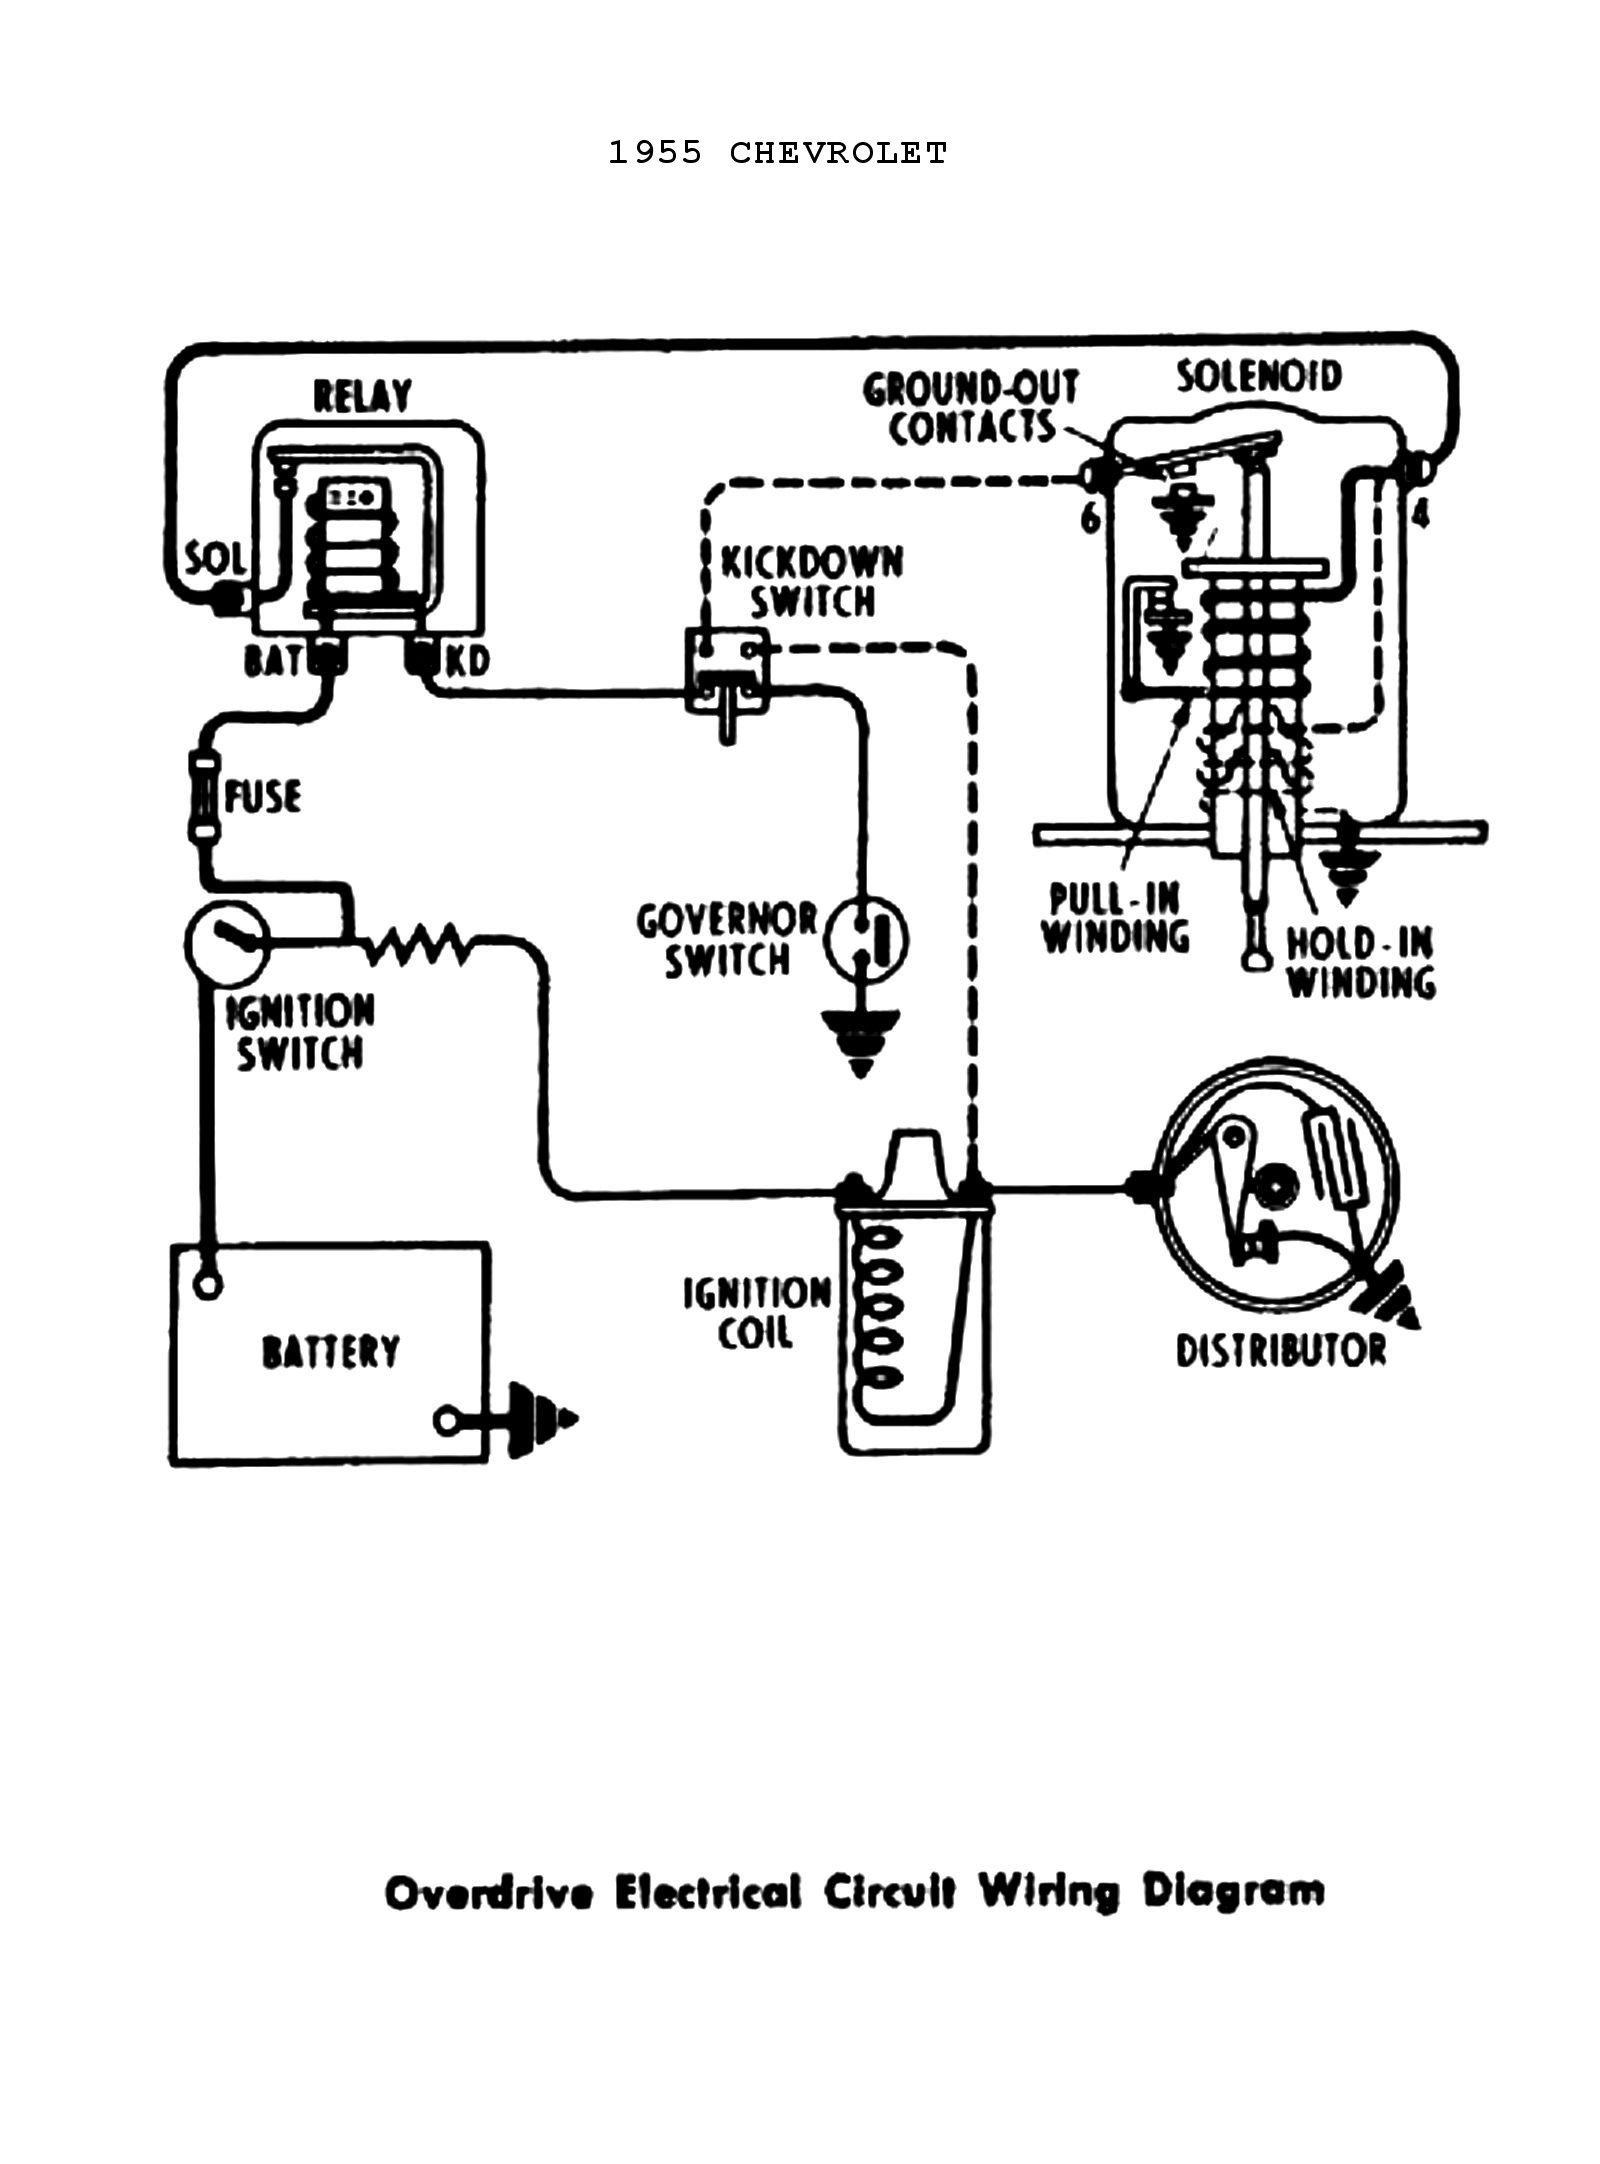 Car ignition system wiring diagram ignition switch wiring diagram chevy 55odtrans1 screnshoots lovely of car ignition